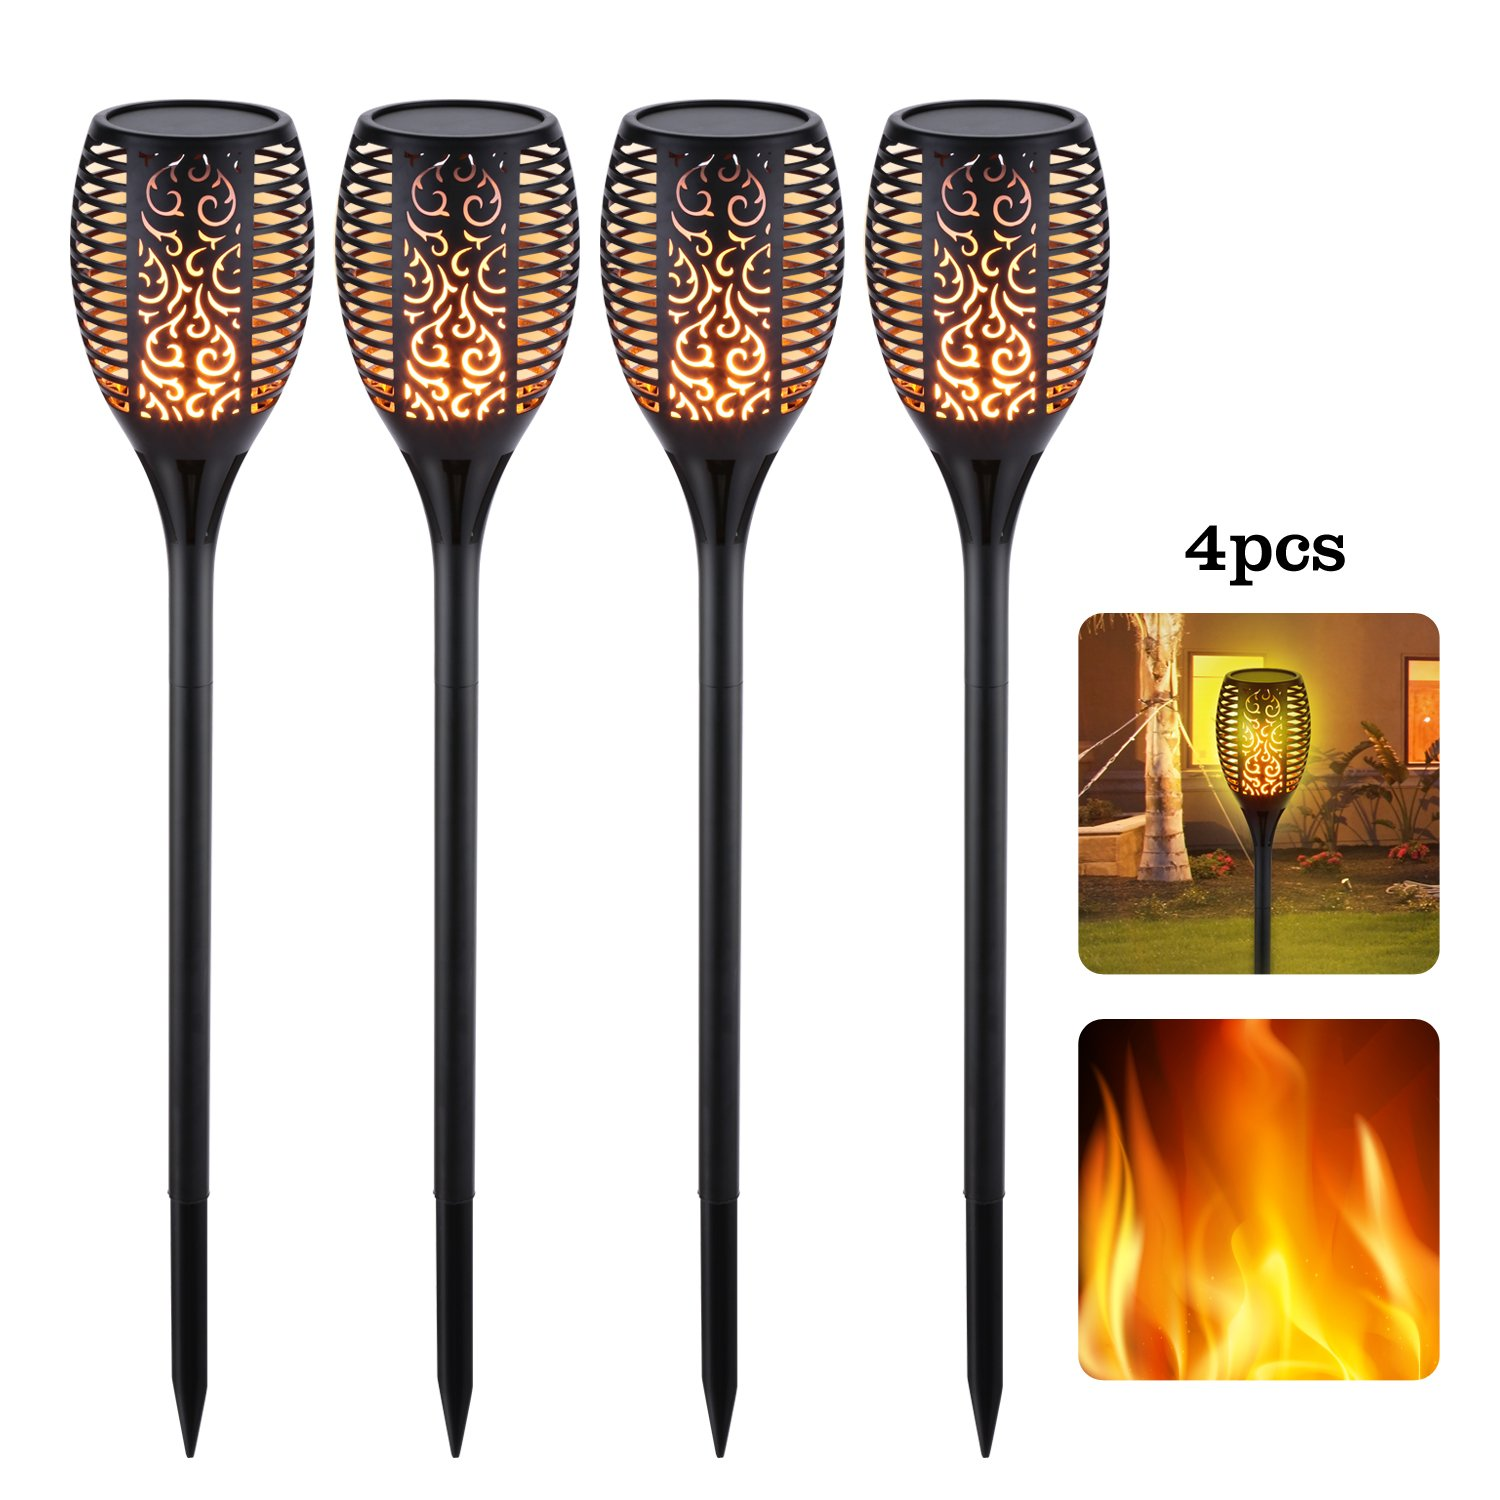 Solar Torch Lights, Waterproof Dancing Flames Torches Lights Outdoor Solar Spot Lights Landscape Decorative Lighting Dusk to Dawn Auto On/Off Security Torch Light for Patio Deck Driveway (4)